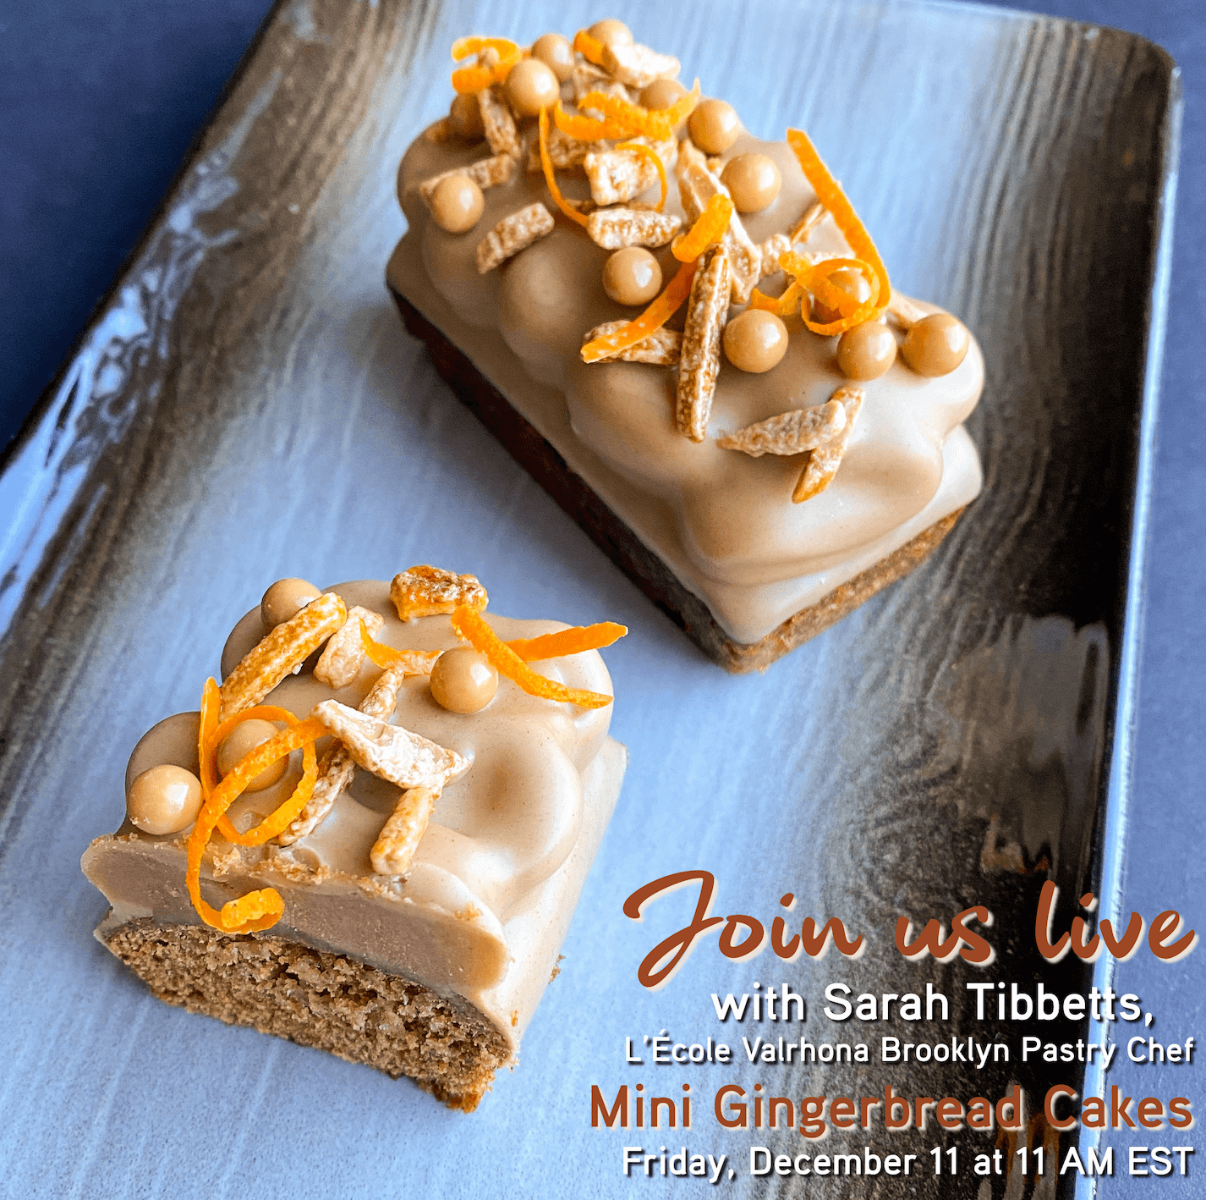 Announcing IG Live with Sarah: Mini Gingerbread Cakes